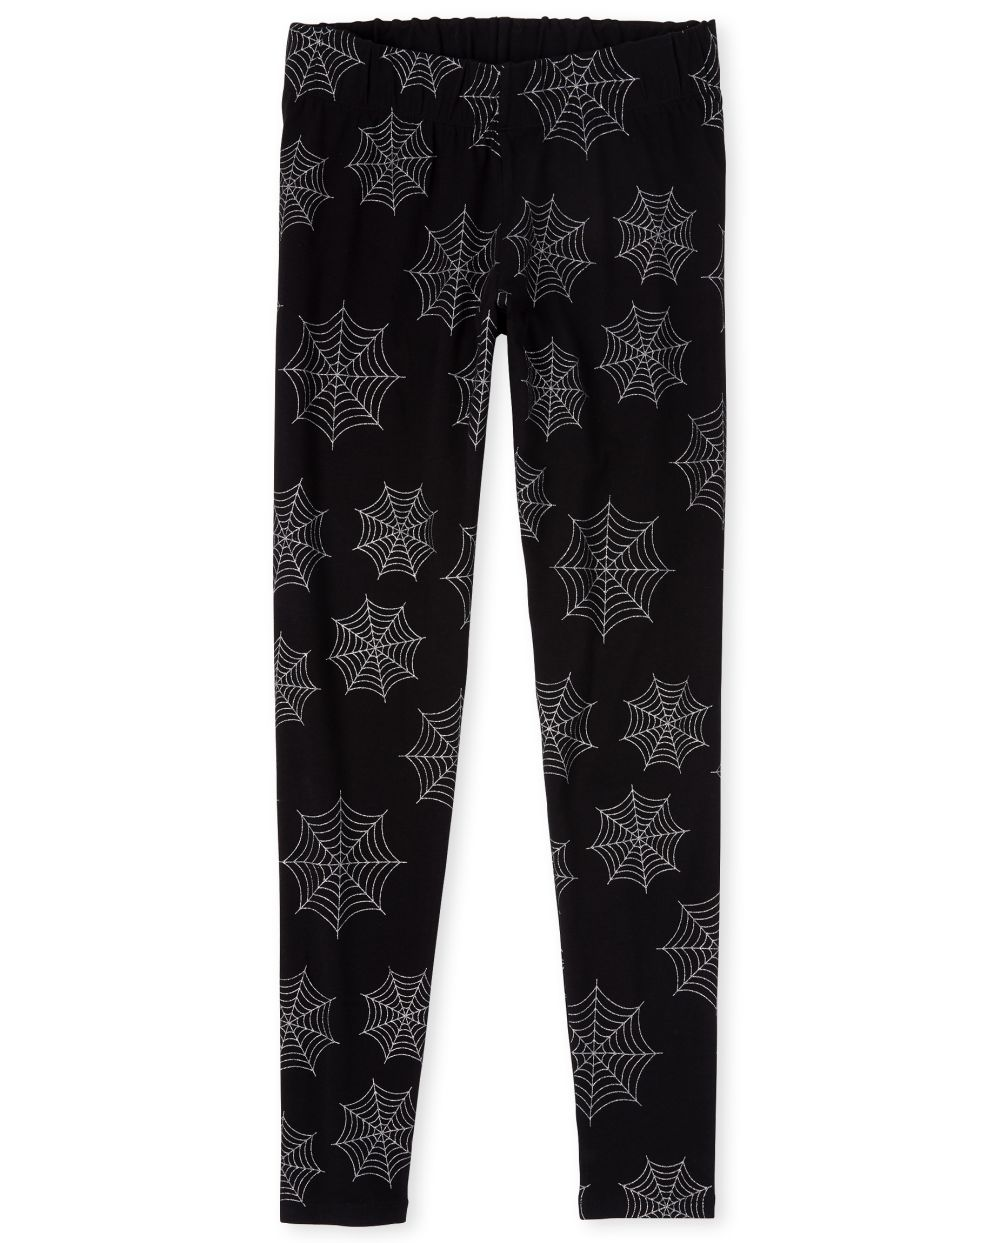 Womens Mommy And Me Halloween Glitter Spider Matching Leggings